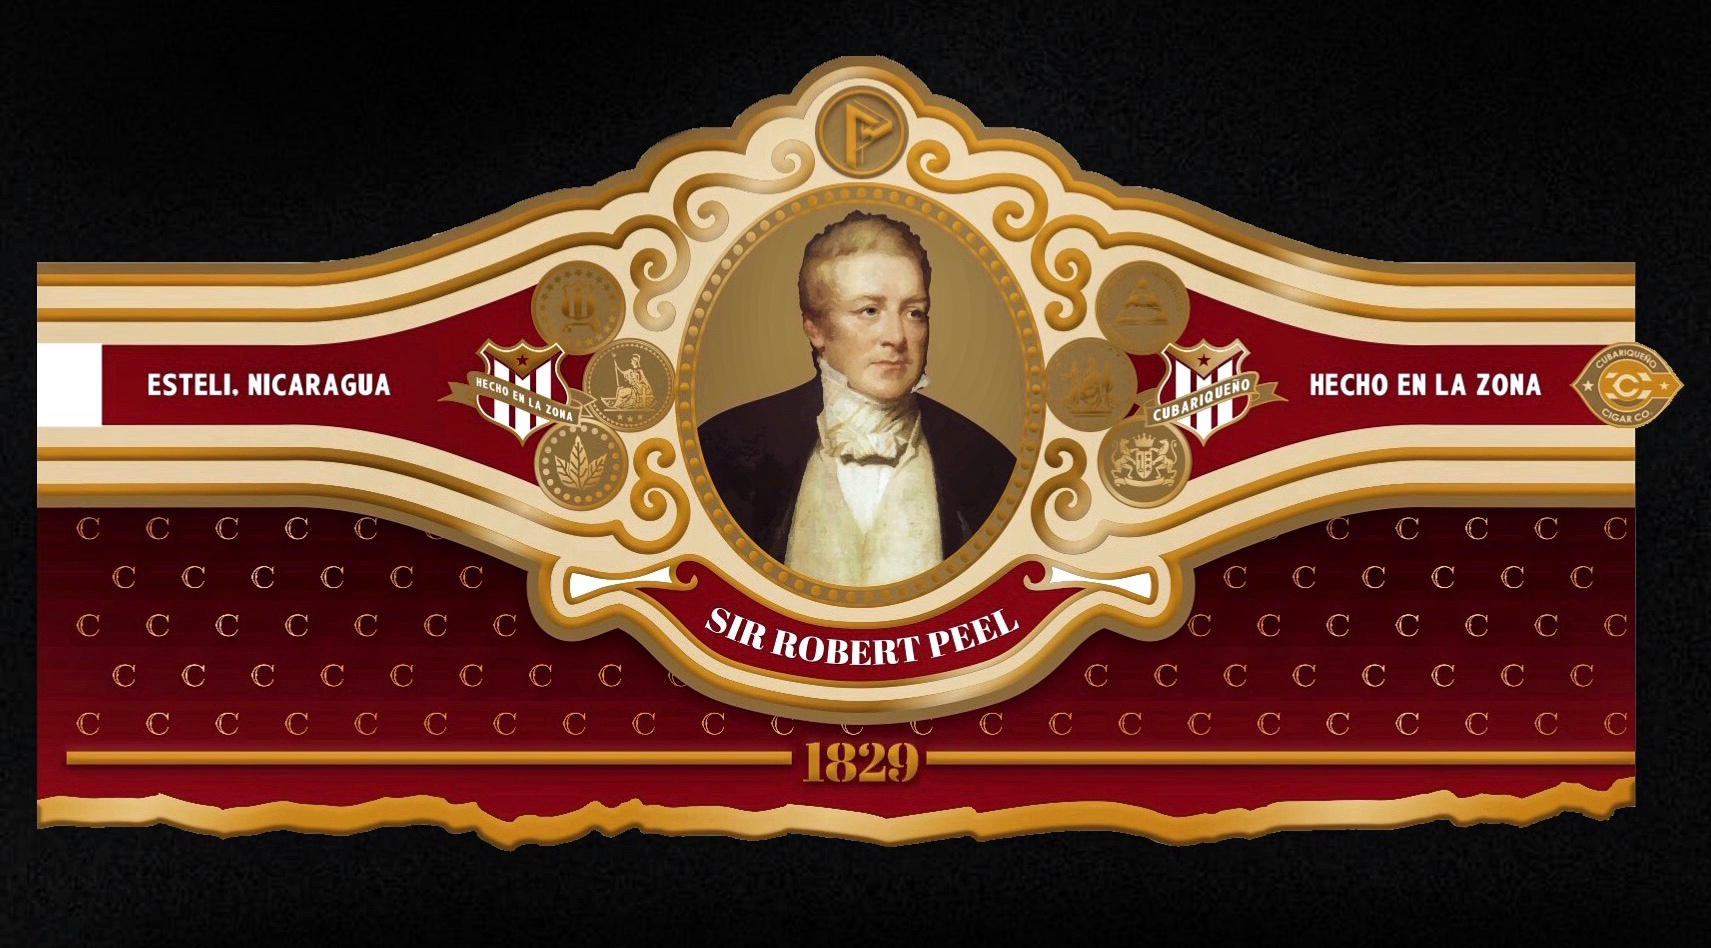 Cigar News: Cubariqueño Cigar Company to Introduce Protocol Sir Robert Peel at the 2019 IPCPR